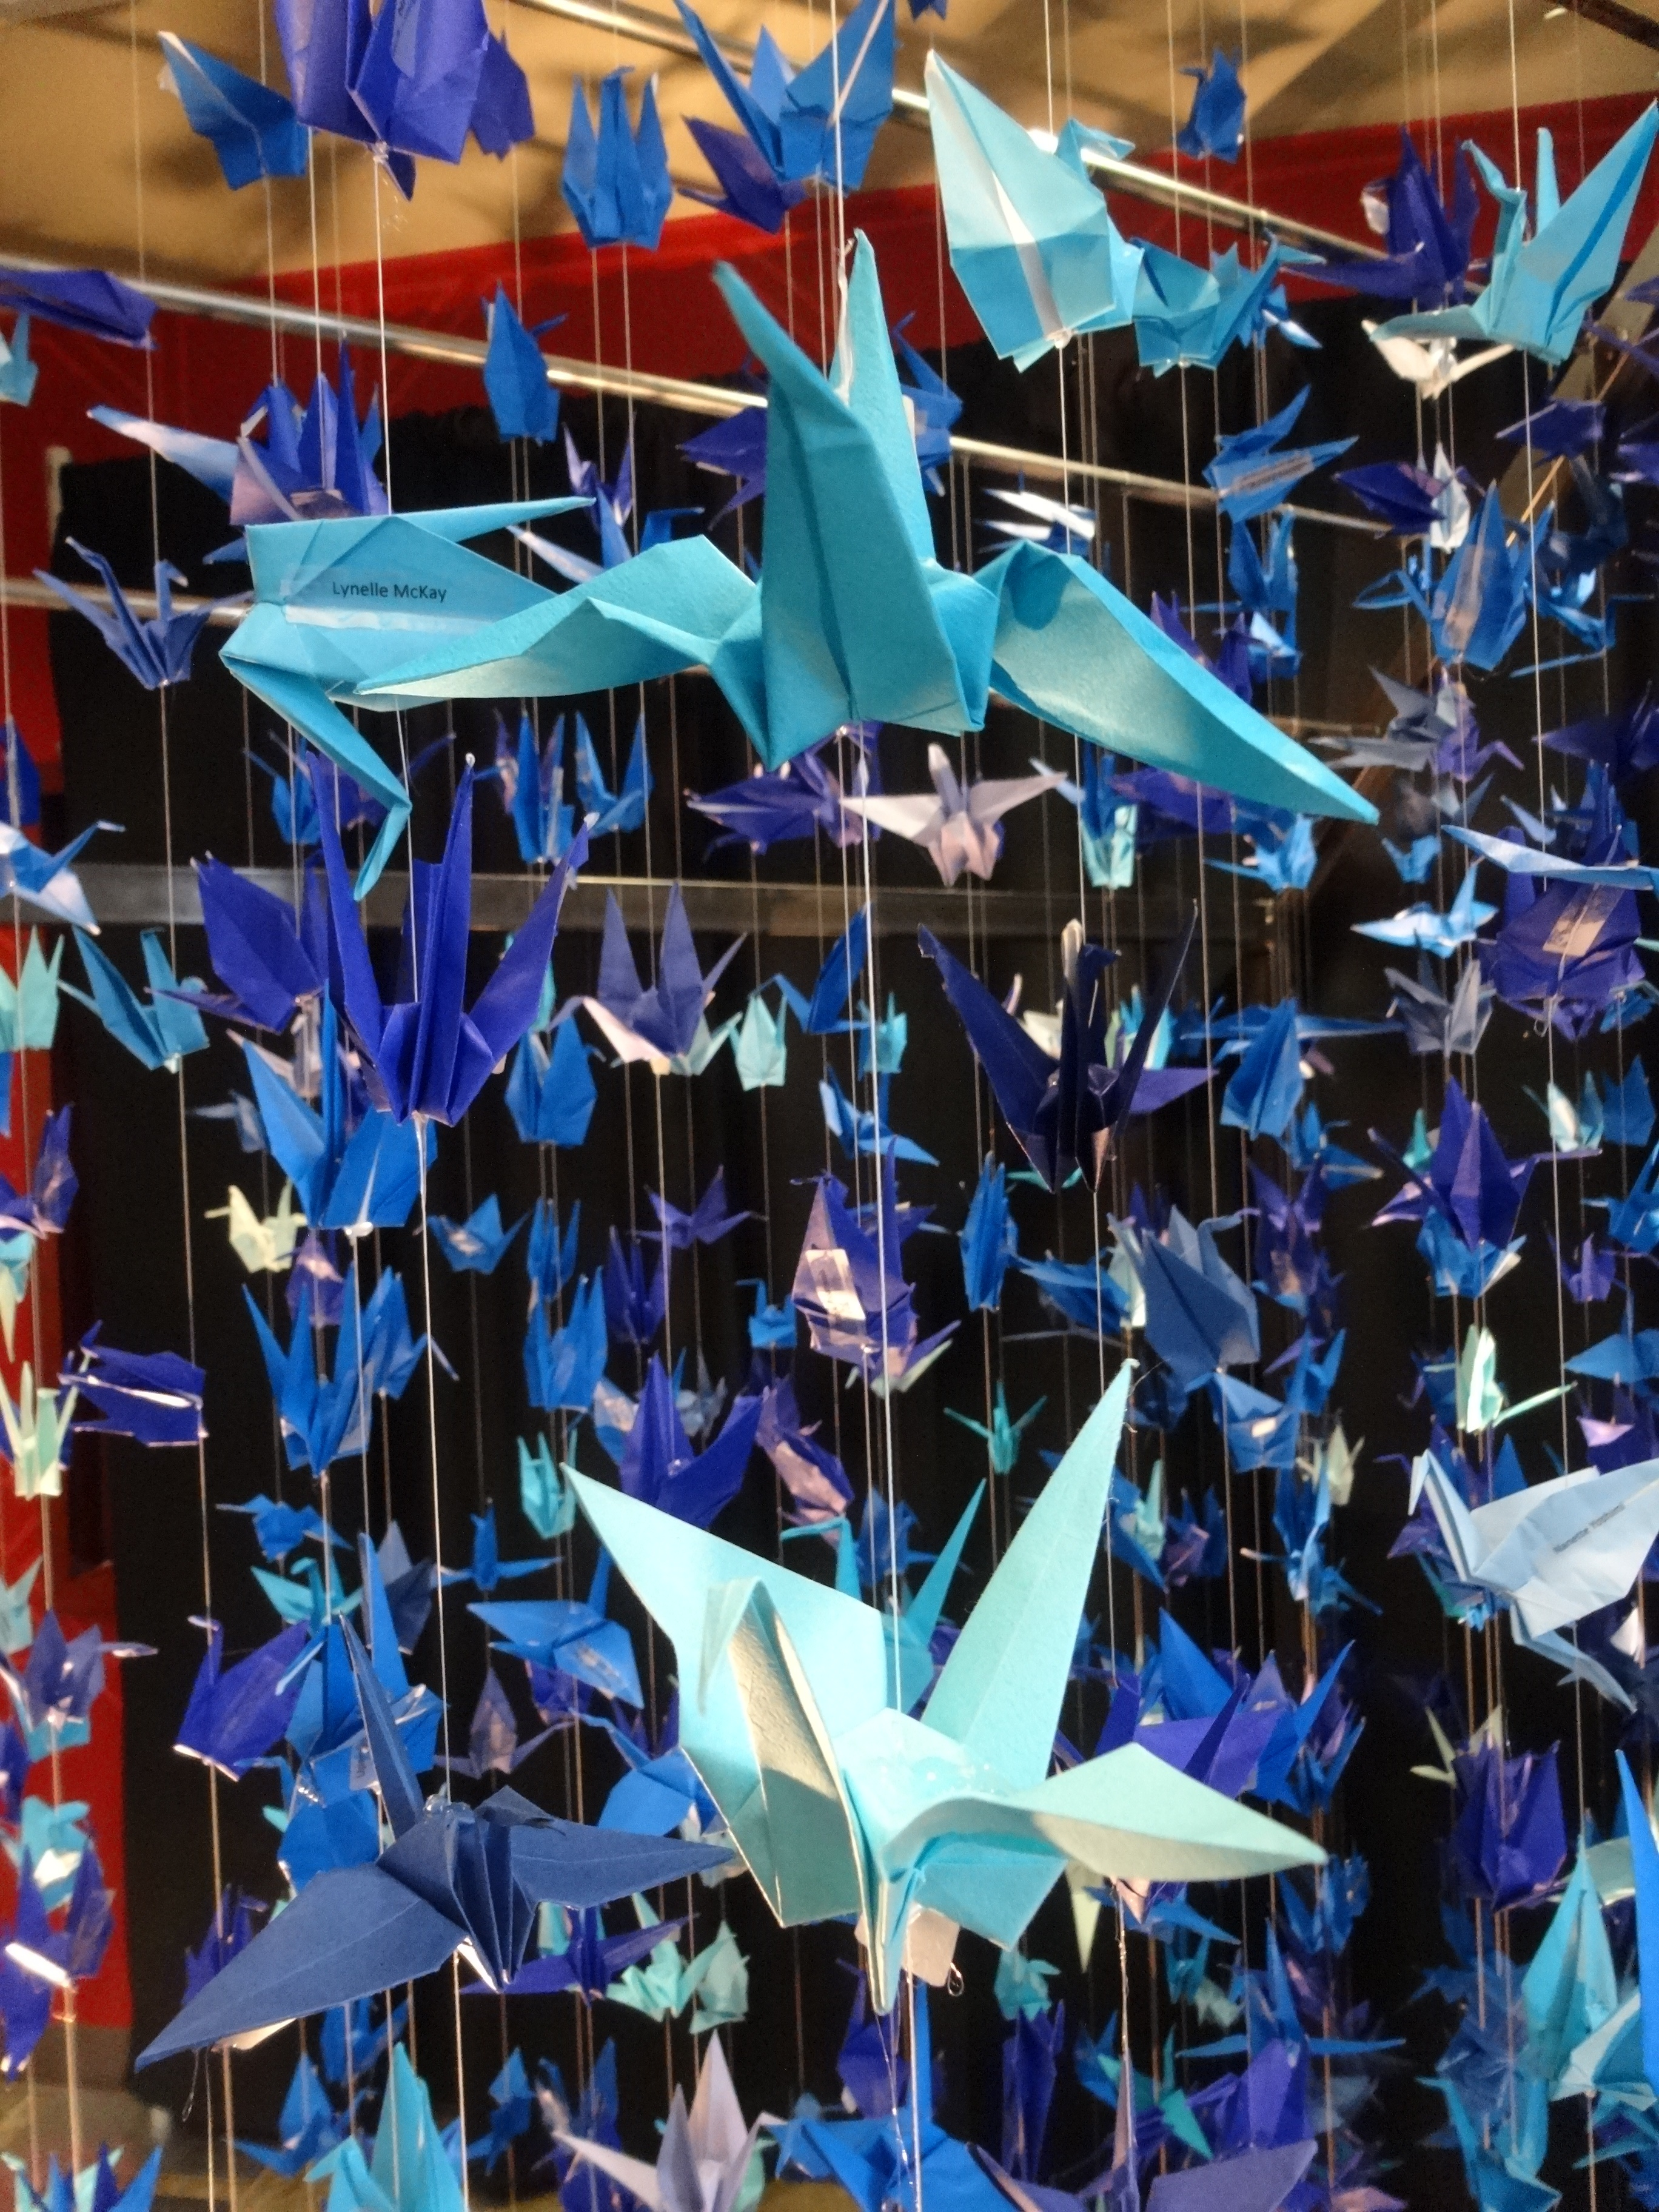 Monthly DIY: Hanging Origami Paper Cranes - Citizen Erased Photography | 3648x2736